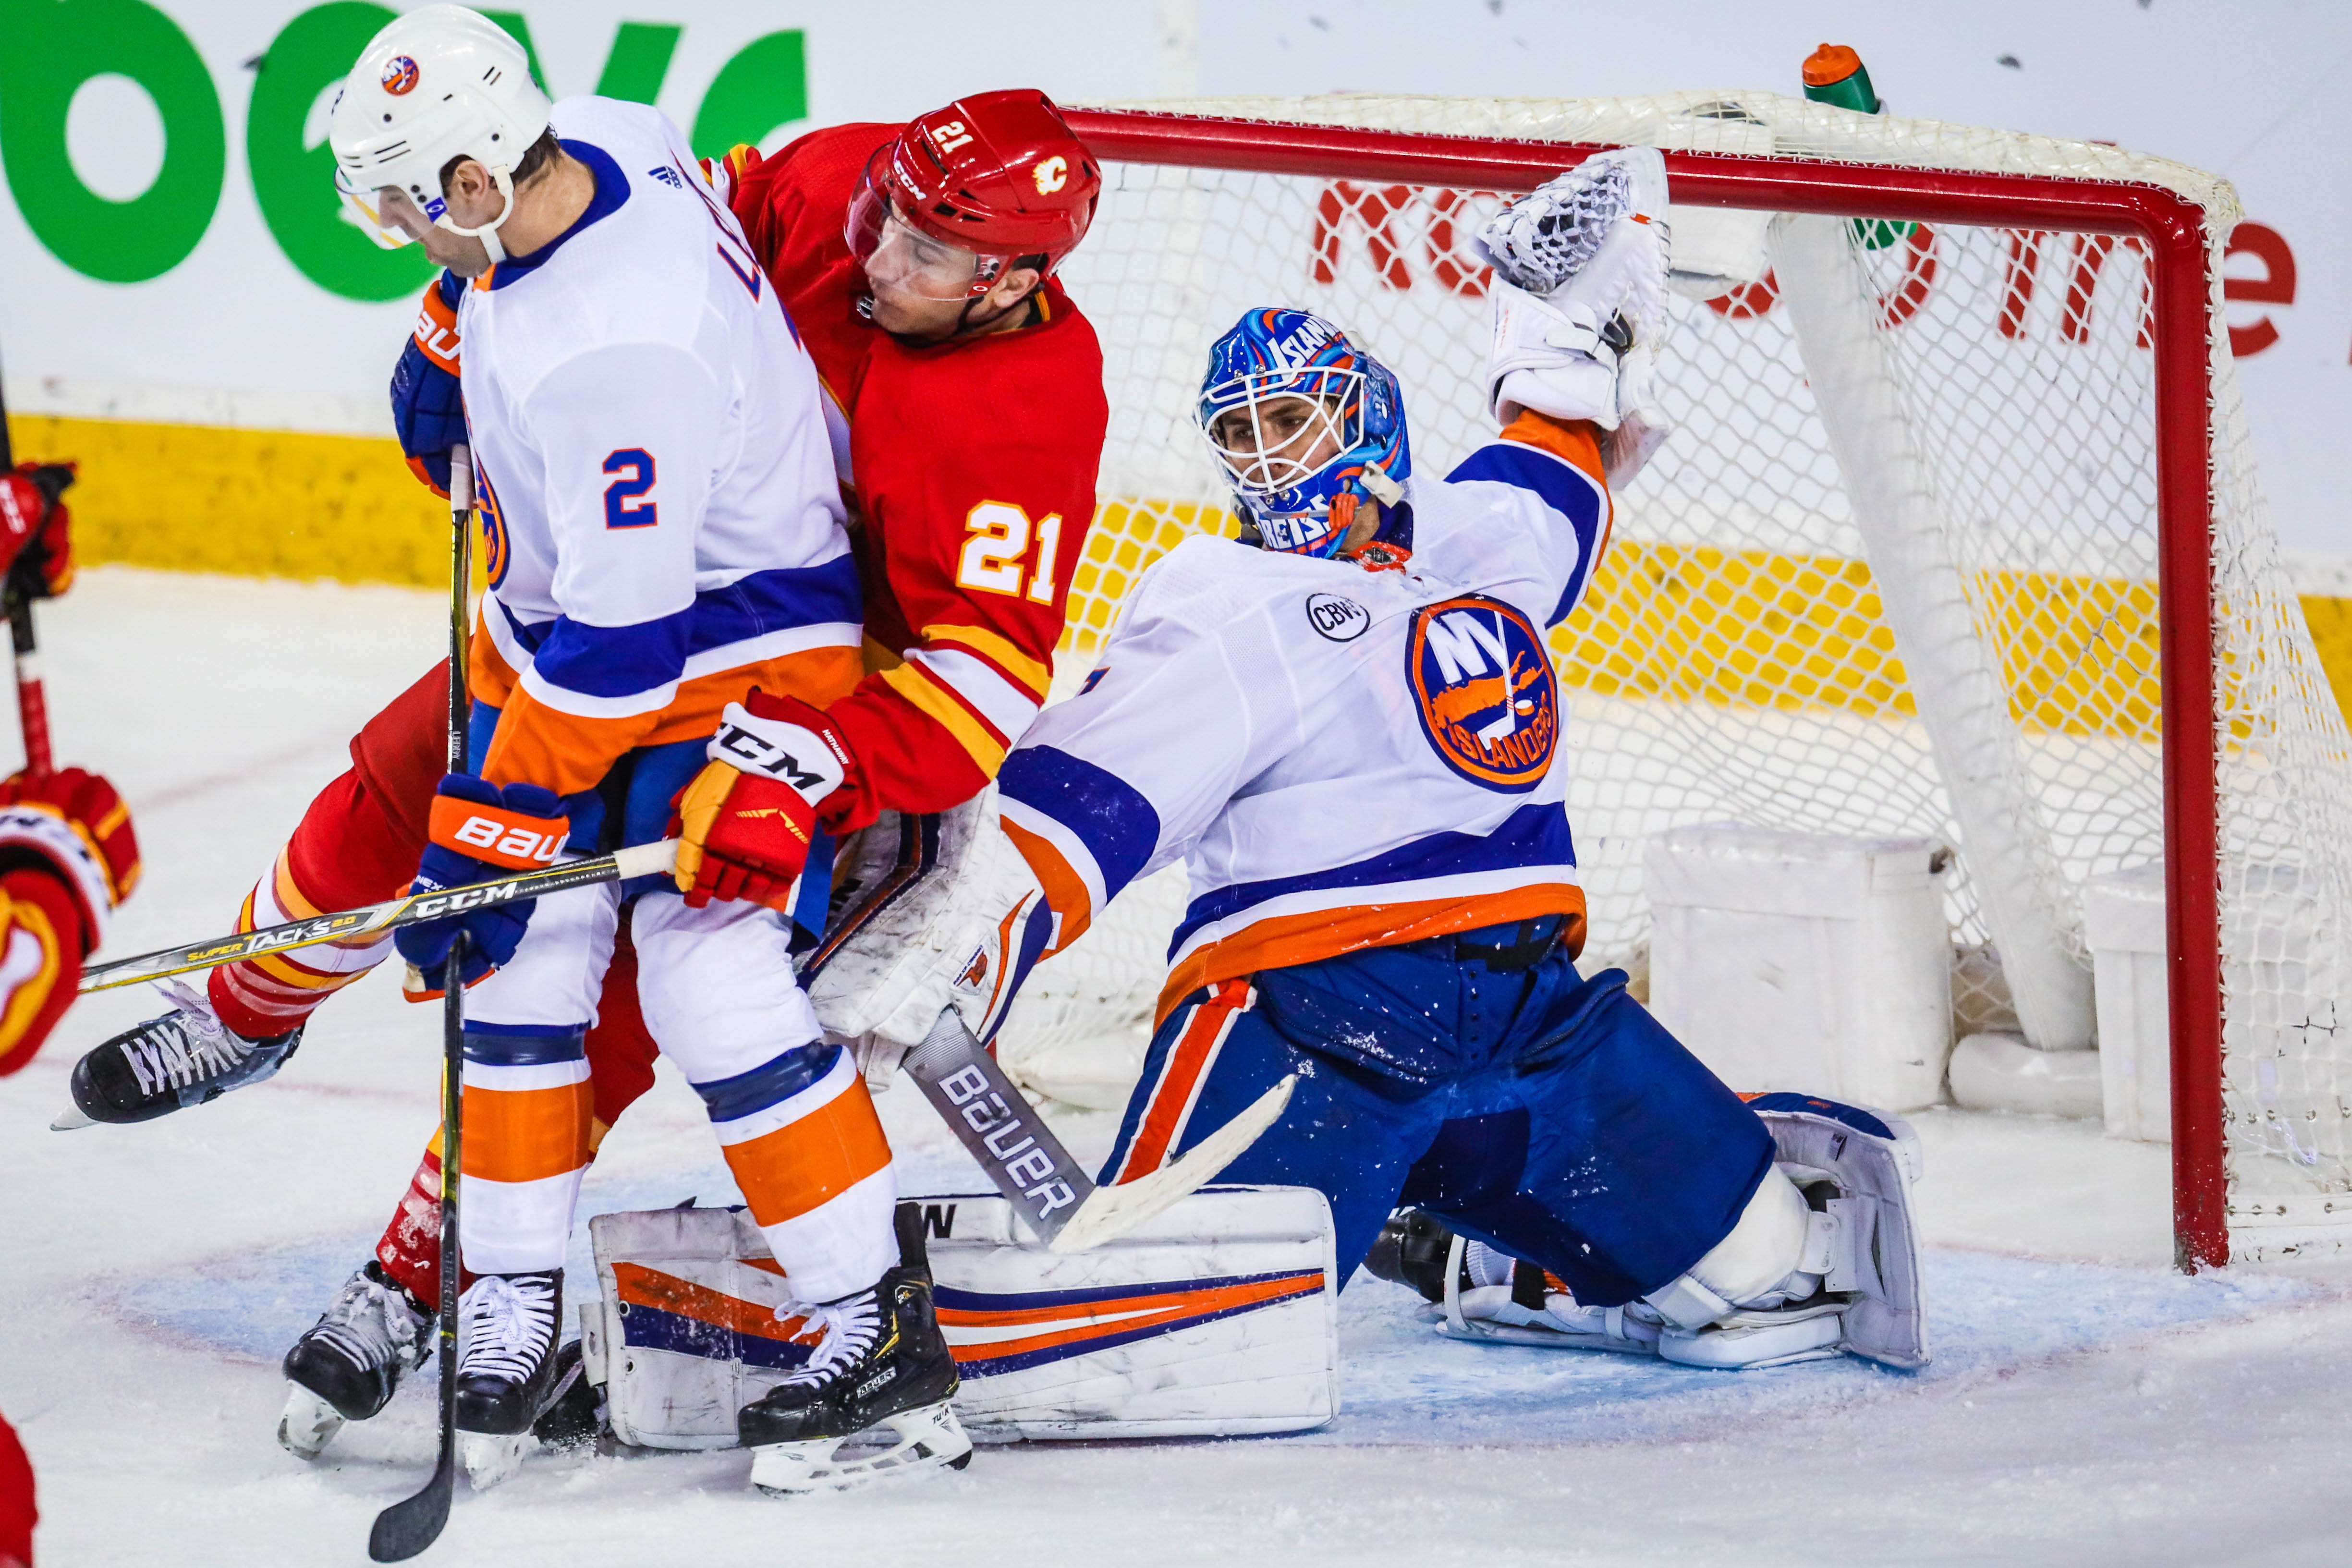 Feb 20, 2019; Calgary, Alberta, CAN; New York Islanders goaltender Thomas Greiss (1) guards his net against the Calgary Flames during the first period at Scotiabank Saddledome. Mandatory Credit: Sergei Belski-USA TODAY Sports